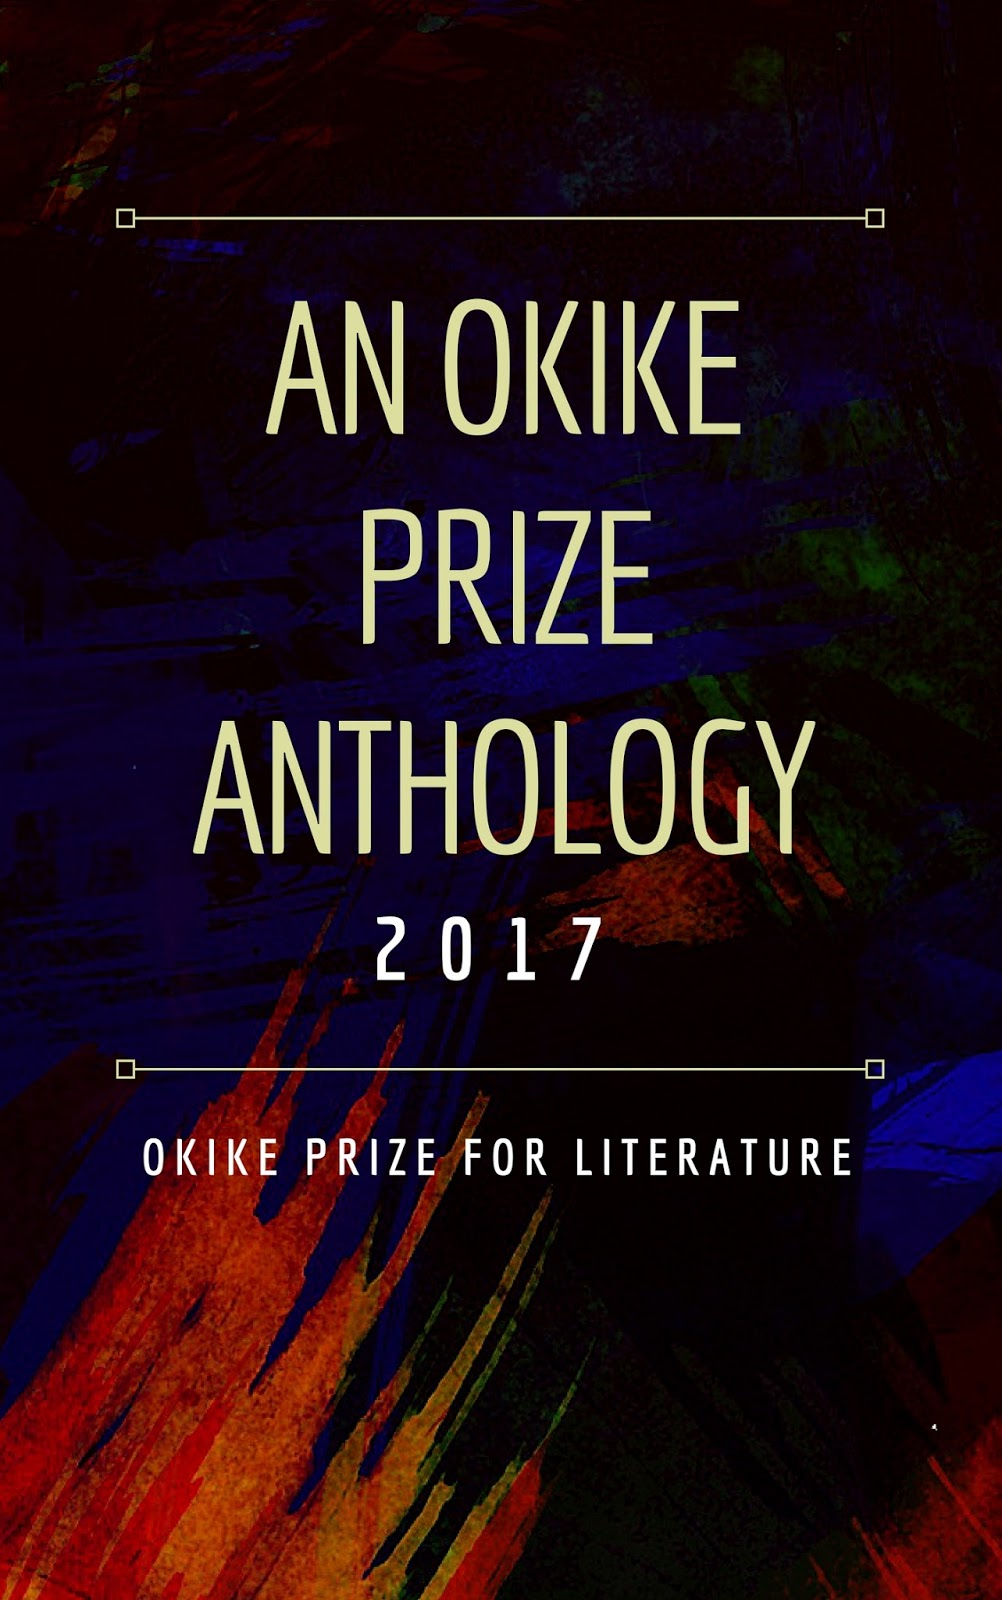 An Okike Prize Anthology 2017 by Okike Prize for Literature